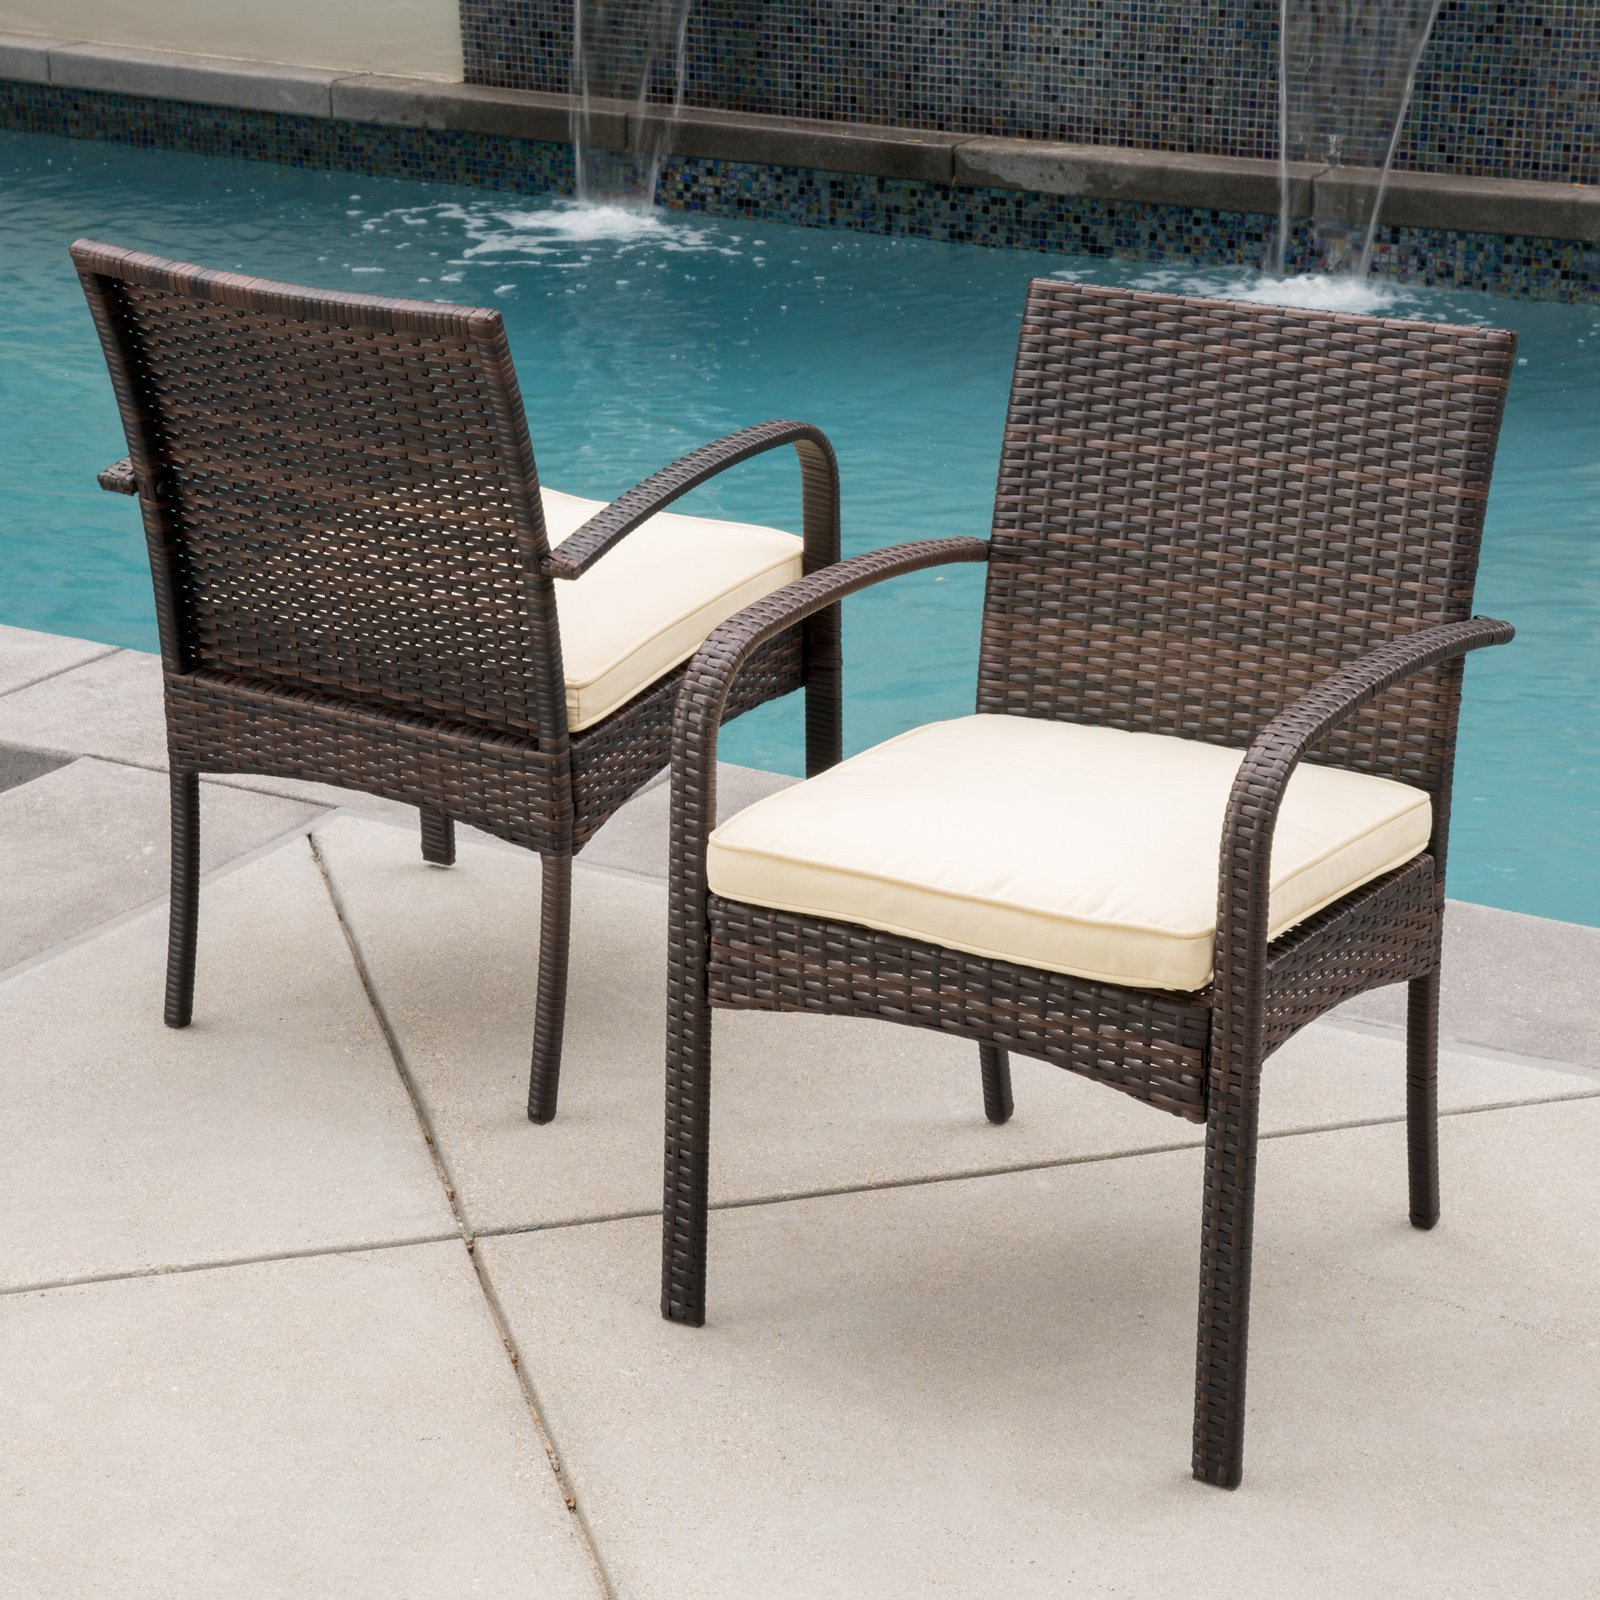 Awesome Outdoor Dining Chairs outdoor patio loungers